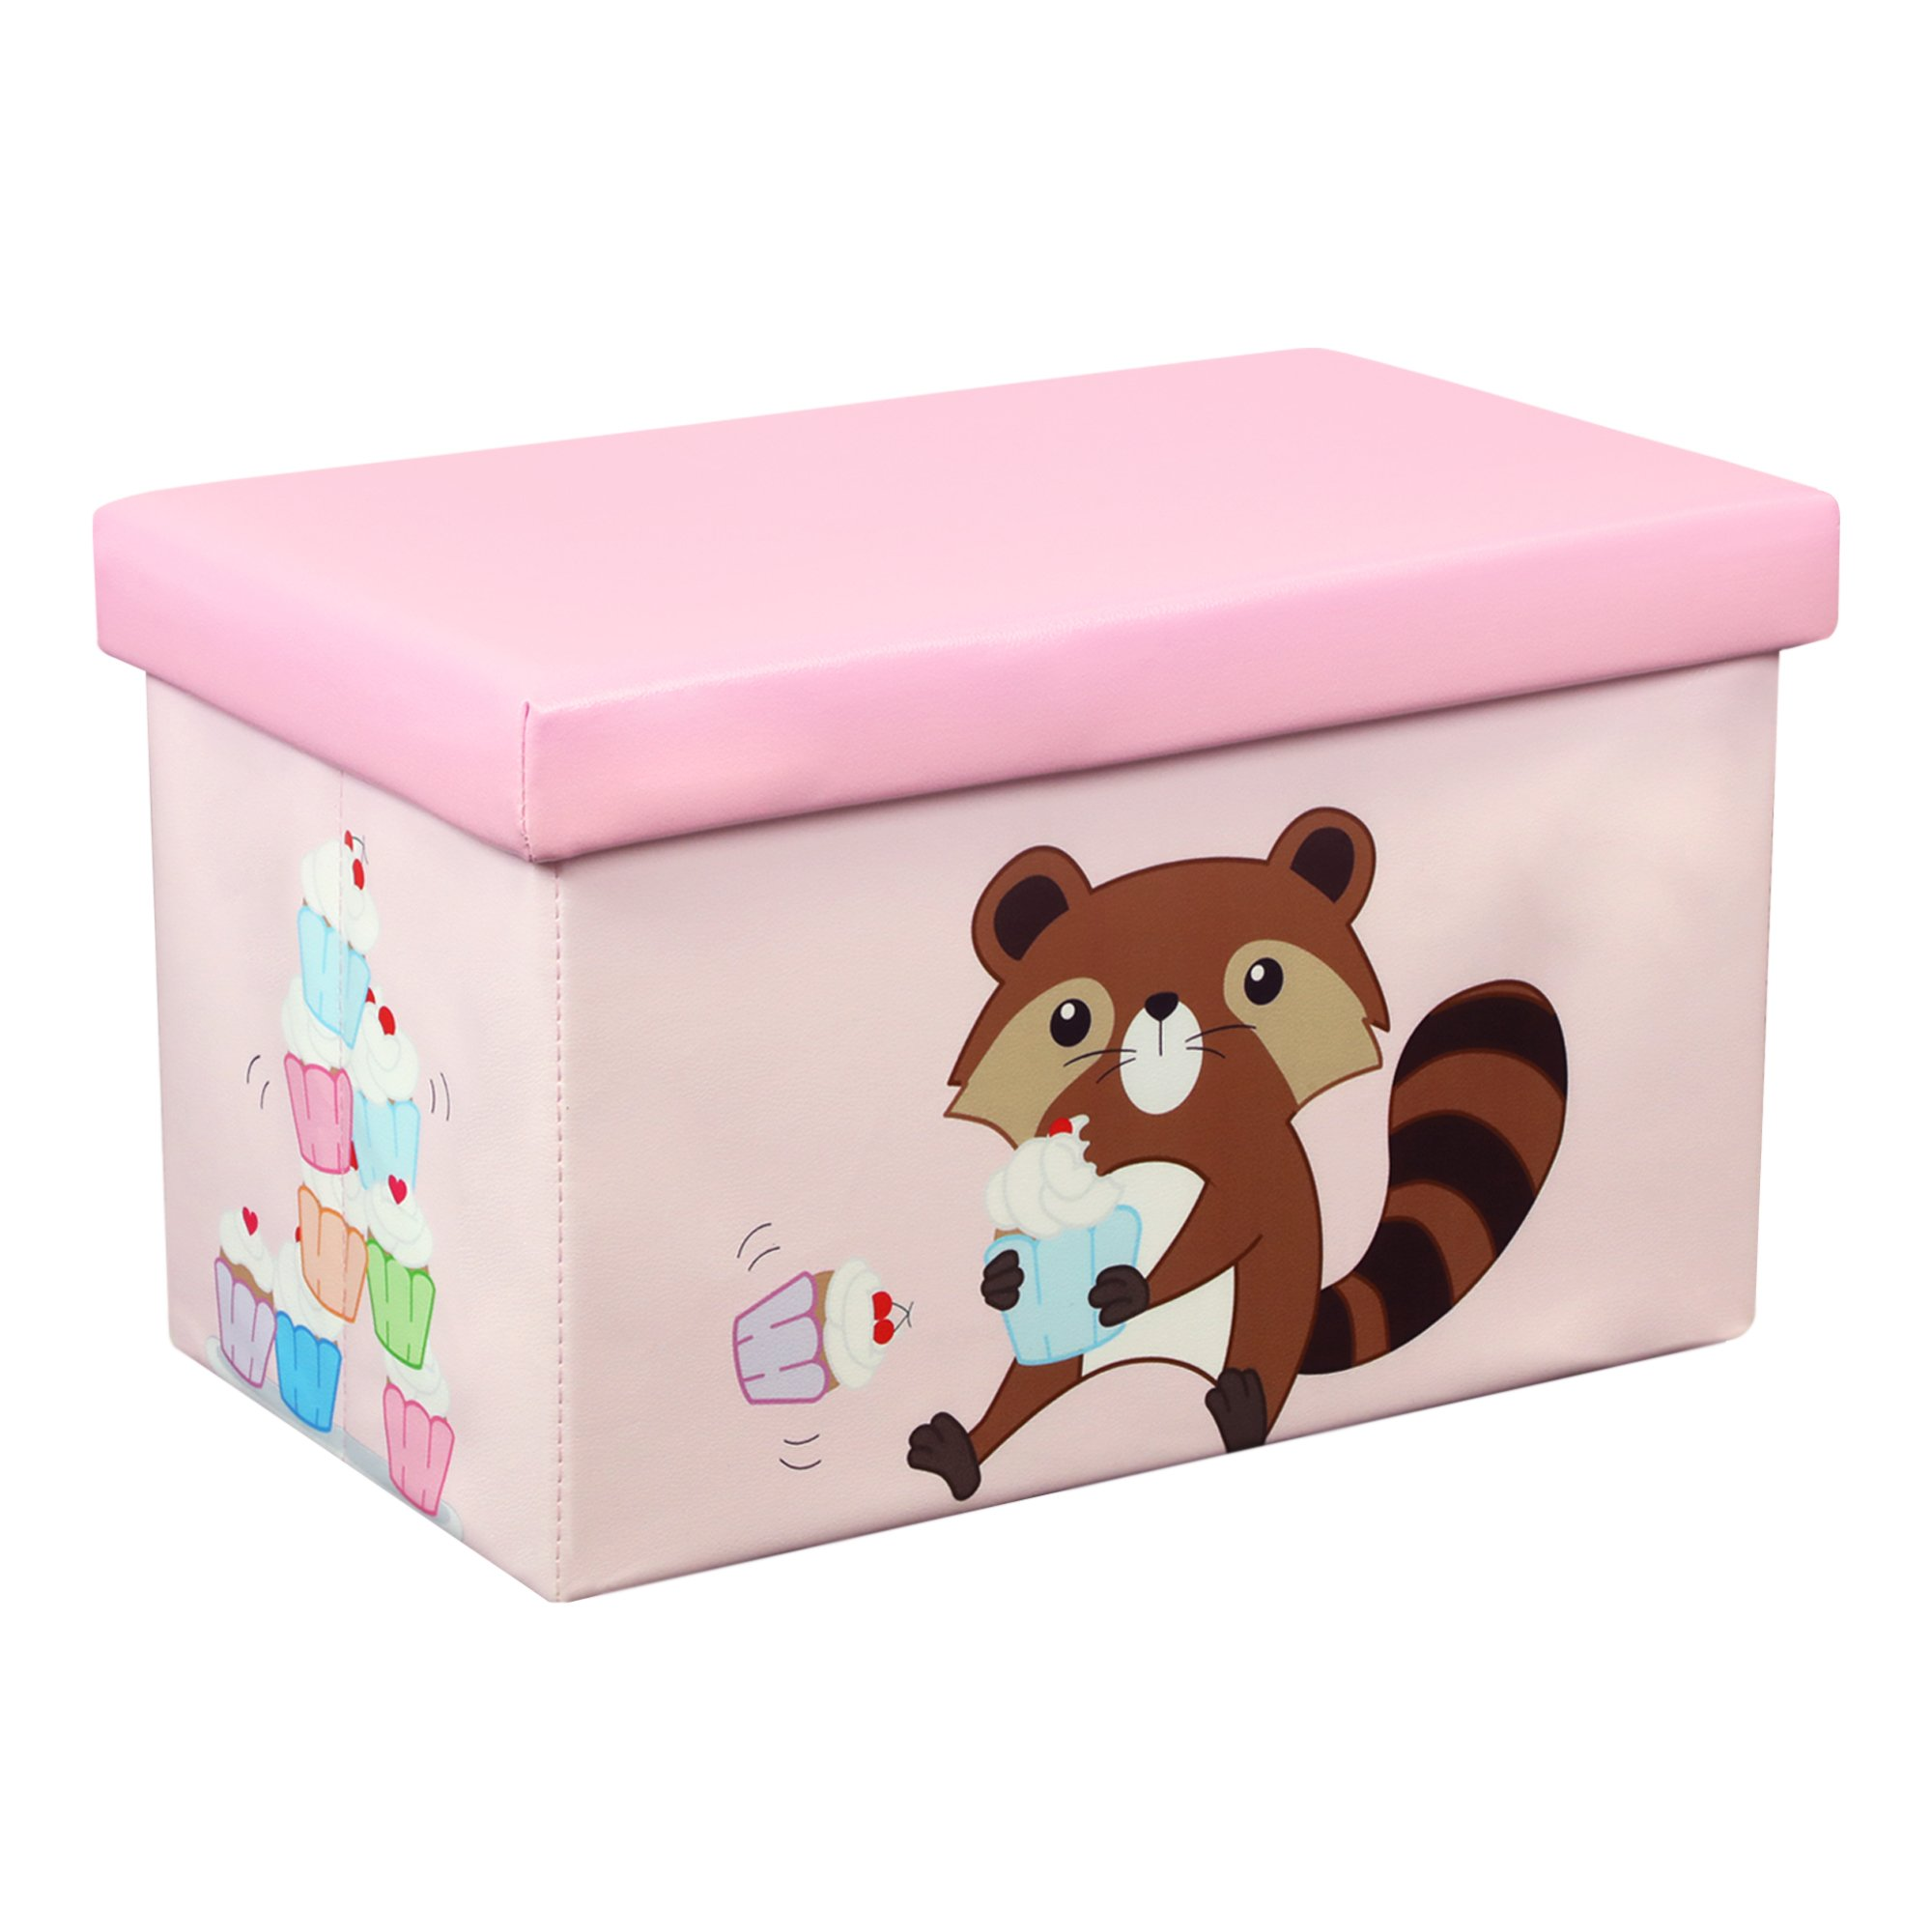 Otto & Ben 23'' Toy Box - Folding Storage Ottoman Chest with Foam Cushion Seat, Washable Faux Leather Foot Rest Stools for Kids, Raccoon and Cupcake